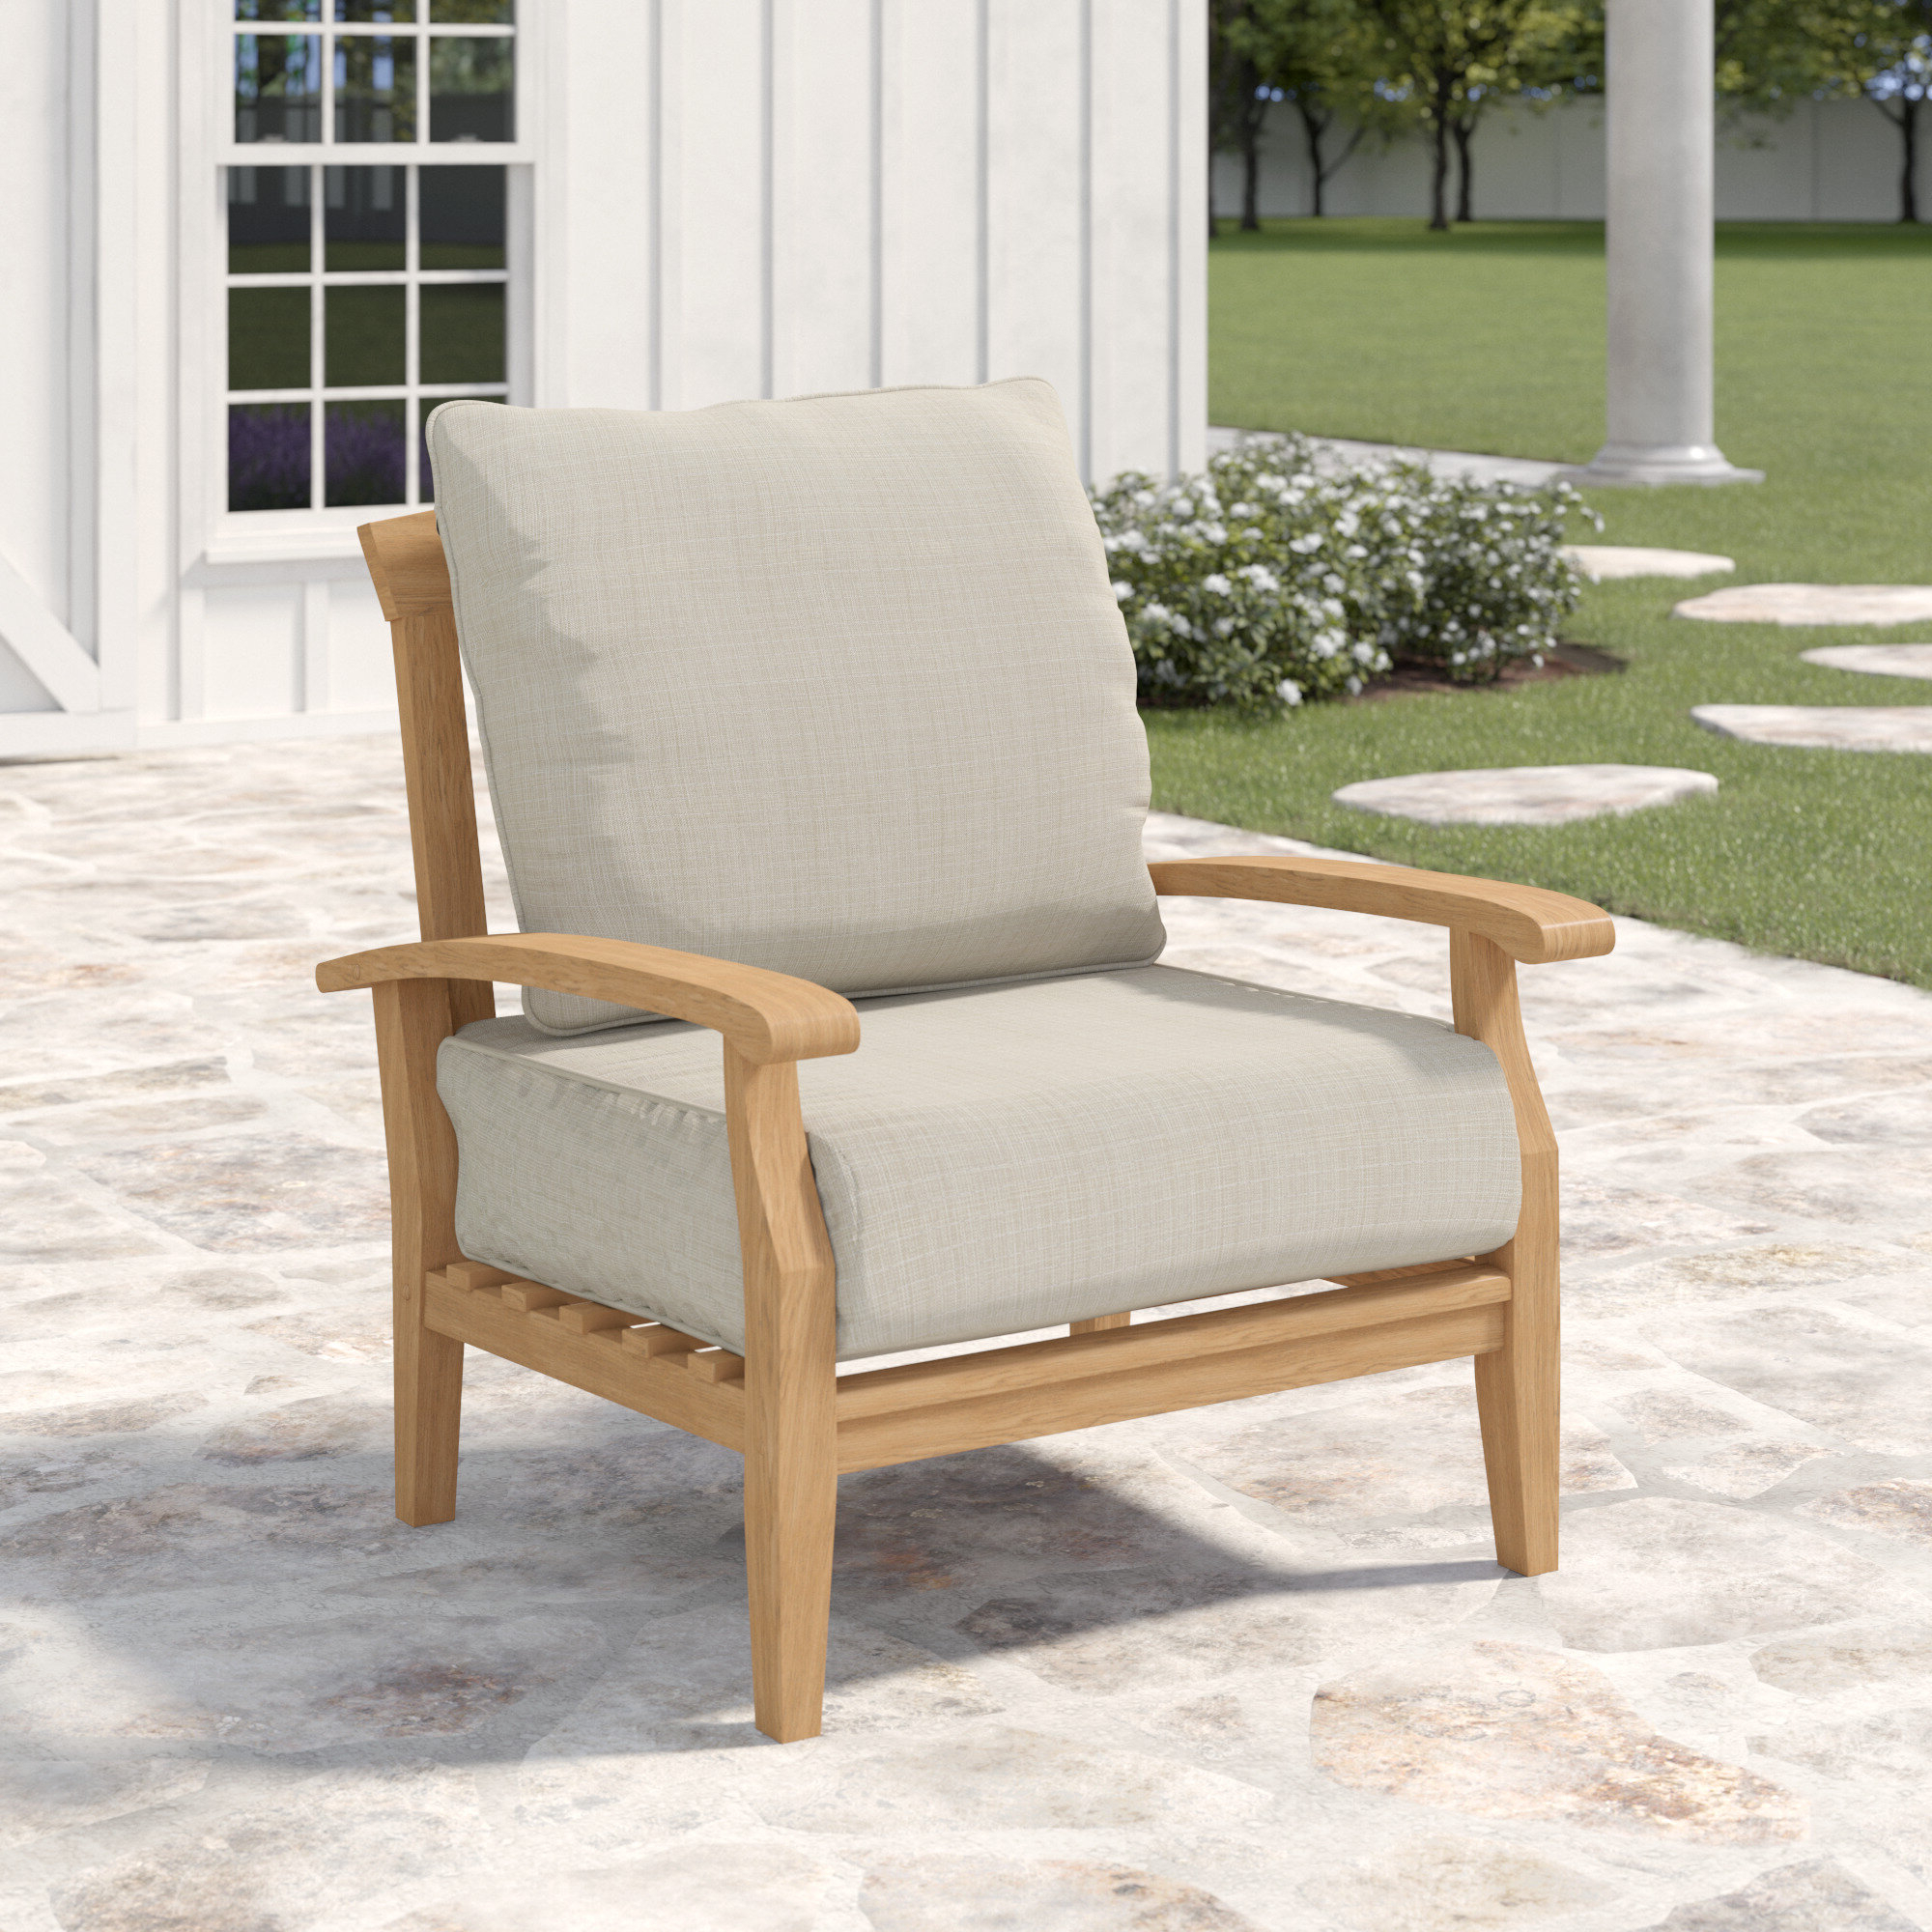 2019 Summerton Teak Patio Chair With Cushions Within Montford Teak Patio Sofas With Cushions (View 1 of 20)